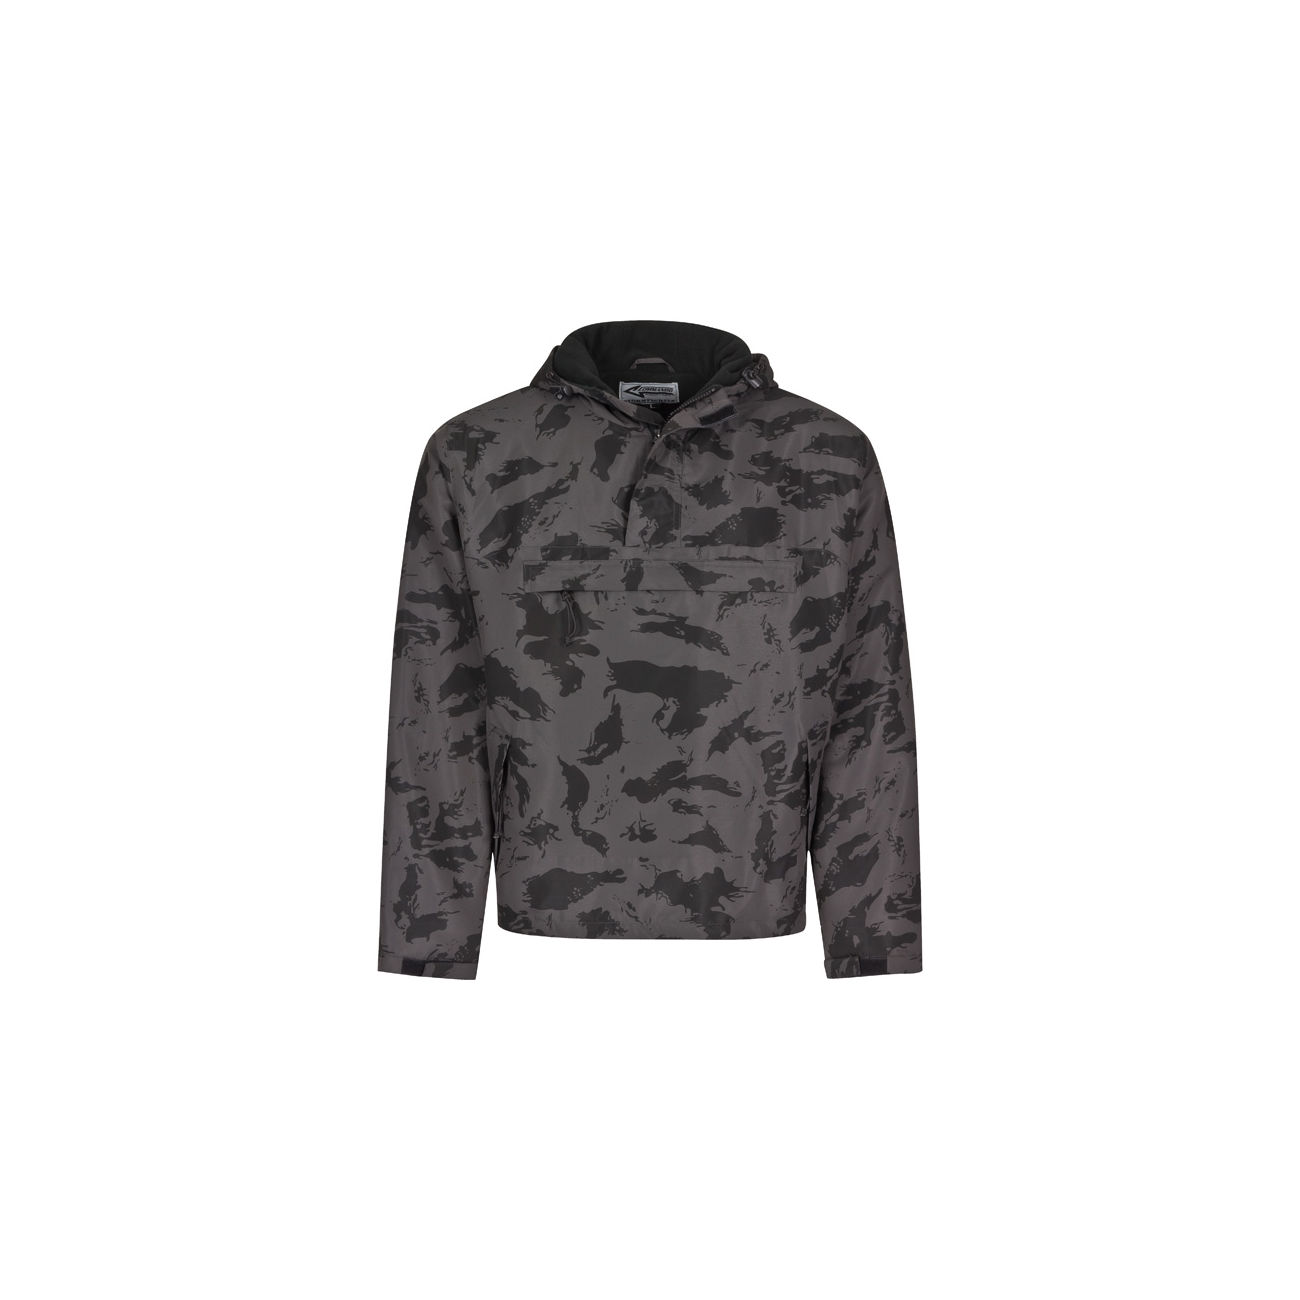 Windbreaker Stormfighter, russian-night-camo 0